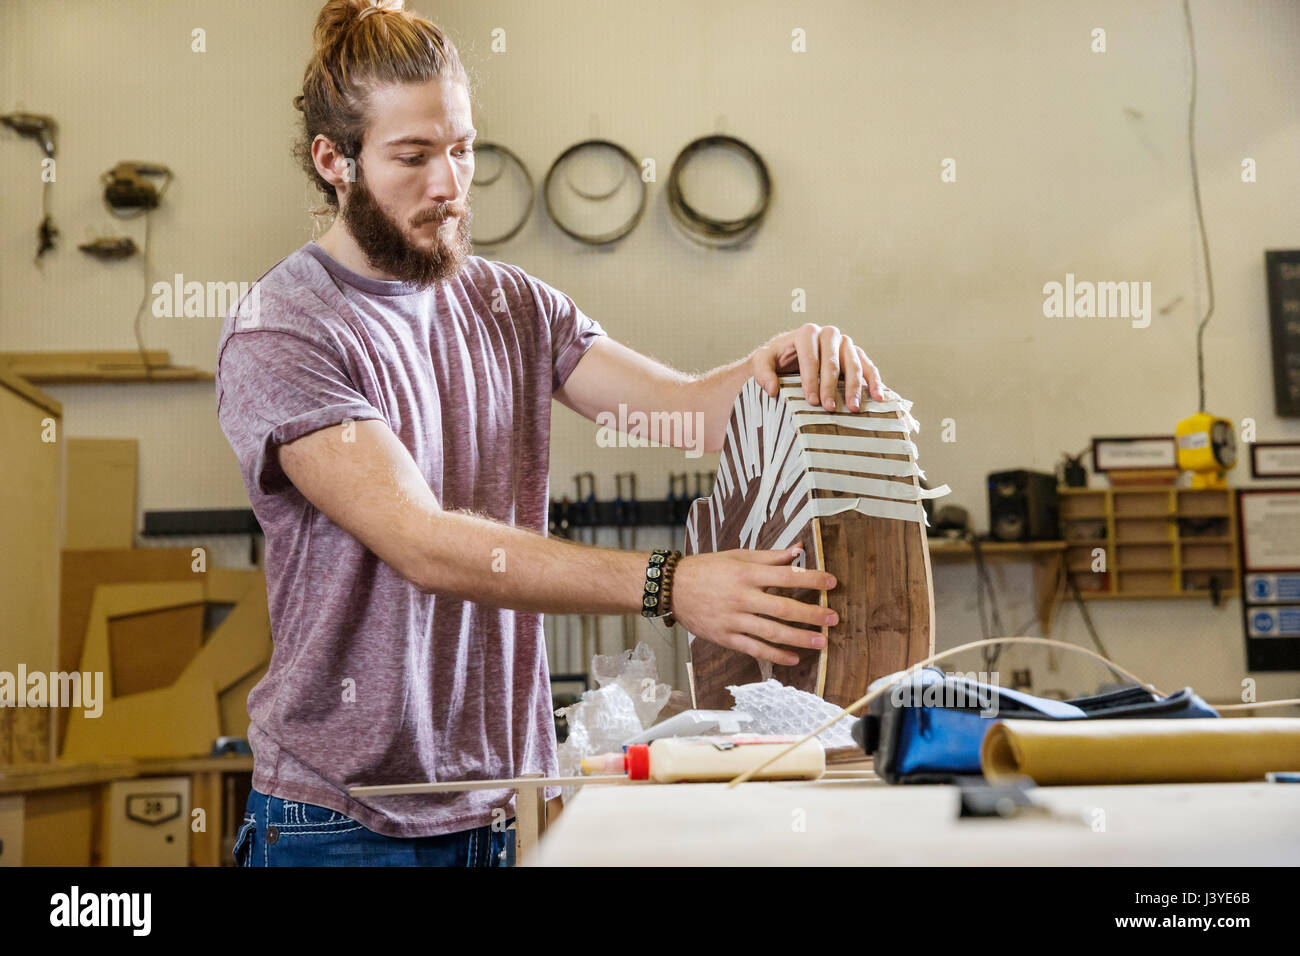 Young man constructing an acoustic guitar in a workshop - Stock Image